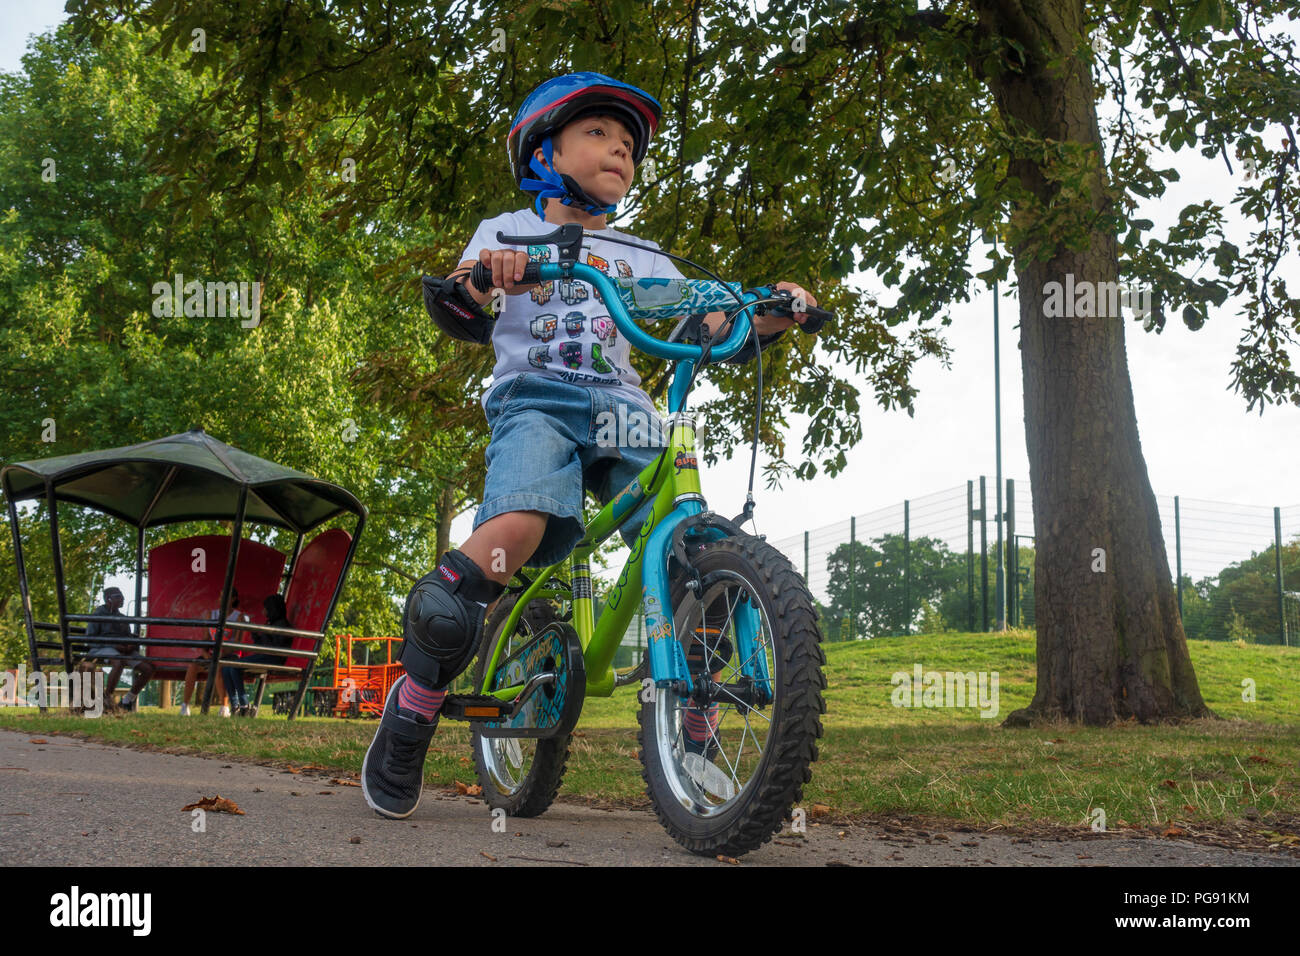 a-young-boy-rides-his-bicycle-in-prospect-park-in-reading-uk-he-is-wearing-a-bicycle-helmet-and-protective-knee-and-elbow-pads-PG91KM.jpg